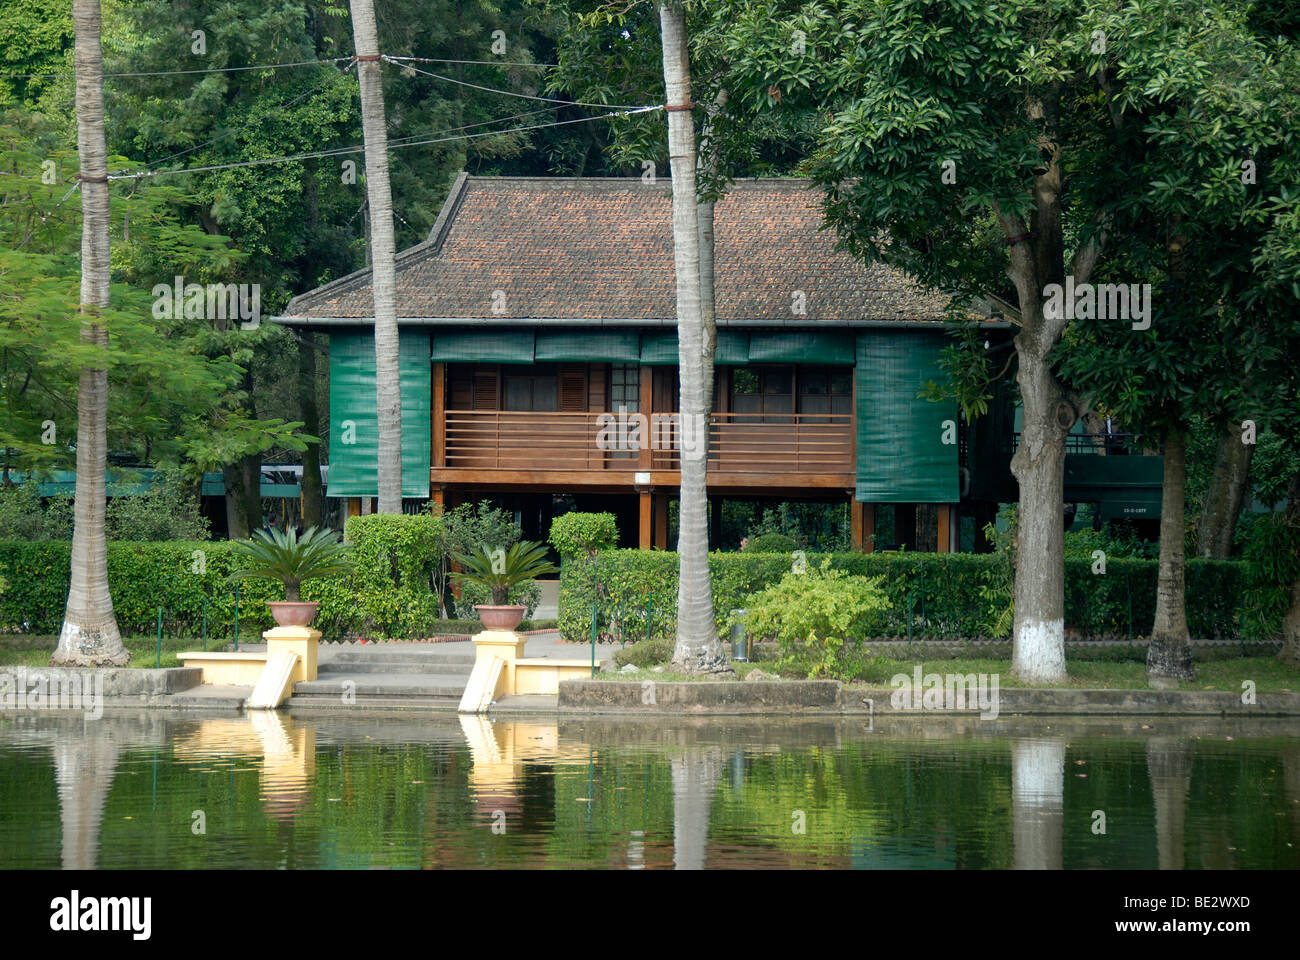 Wooden house on stilts, Ho Chi Minh Lake House, Hanoi, Vietnam, Southeast Asia, Asia - Stock Image